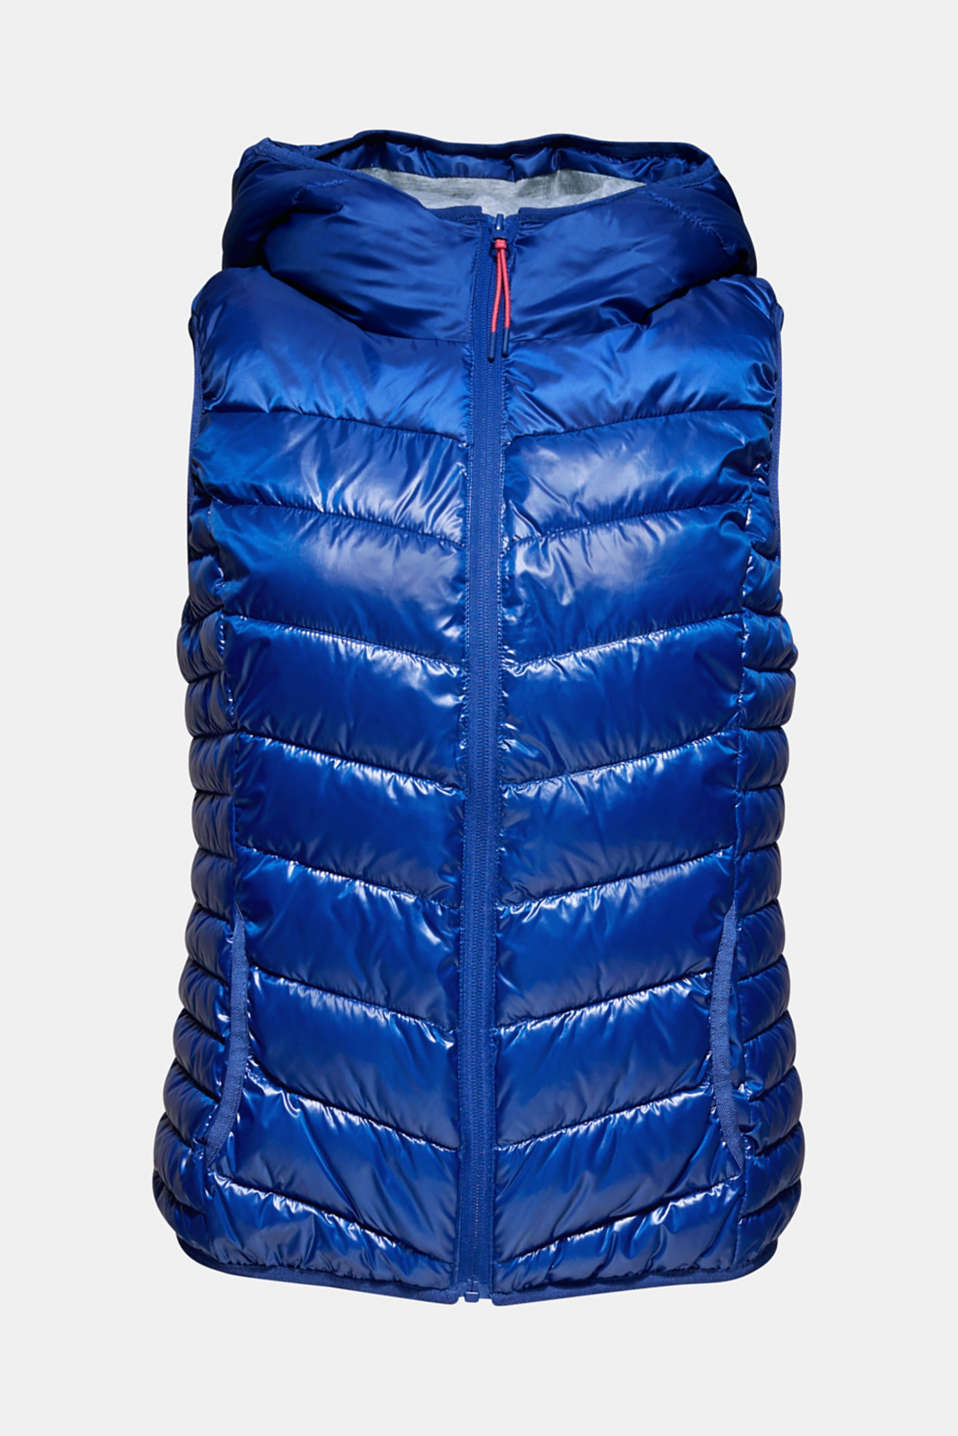 Body warmer with 3M™ Thinsulate™ filling, BRIGHT BLUE, detail image number 6